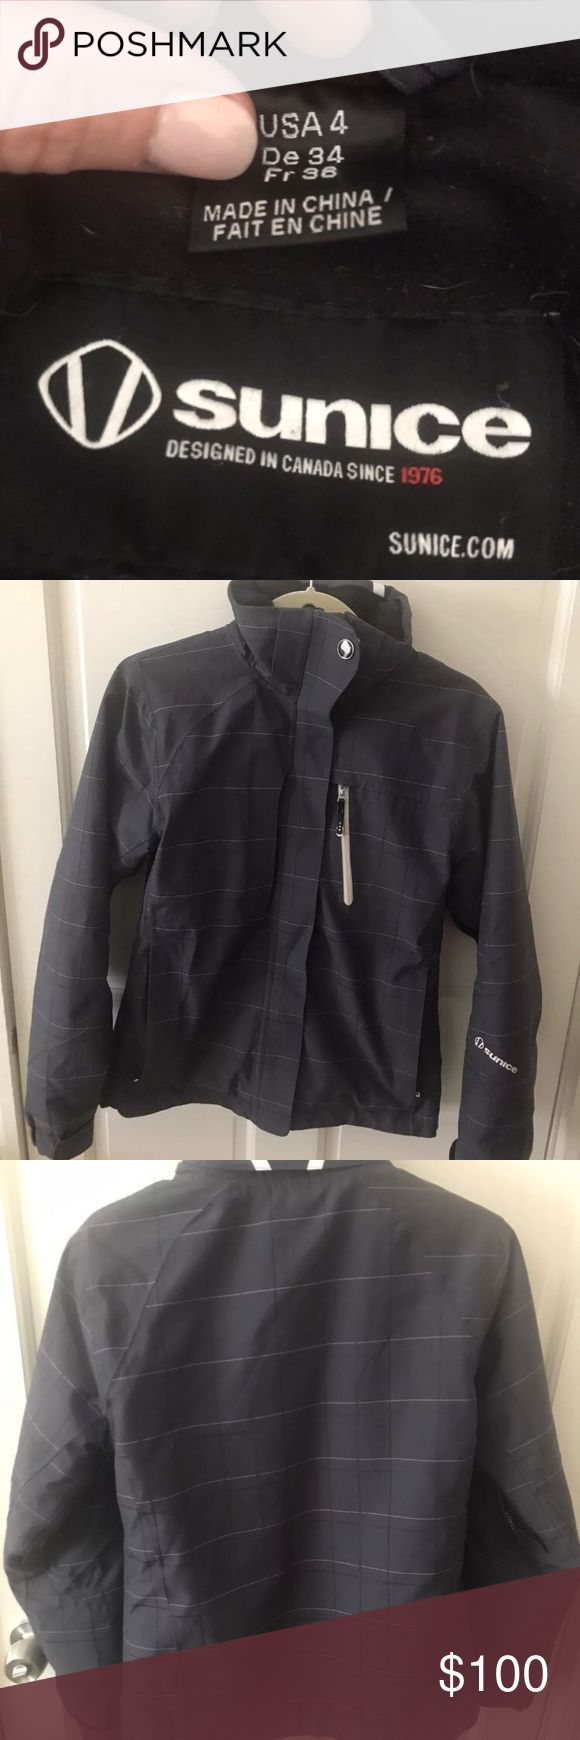 Sunice Ski Parka / Jacket size 4 Sunice ski parka. Excellent condition. For reference I'm 5'3 and 125 lbs. (see pic). My torso is on the long side and the jacket is still the perfect length.   This brand is comparable to Patagonia, North Face, Marmot, Mountain Hardwear. Original cost was $375. sunice Jackets & Coats